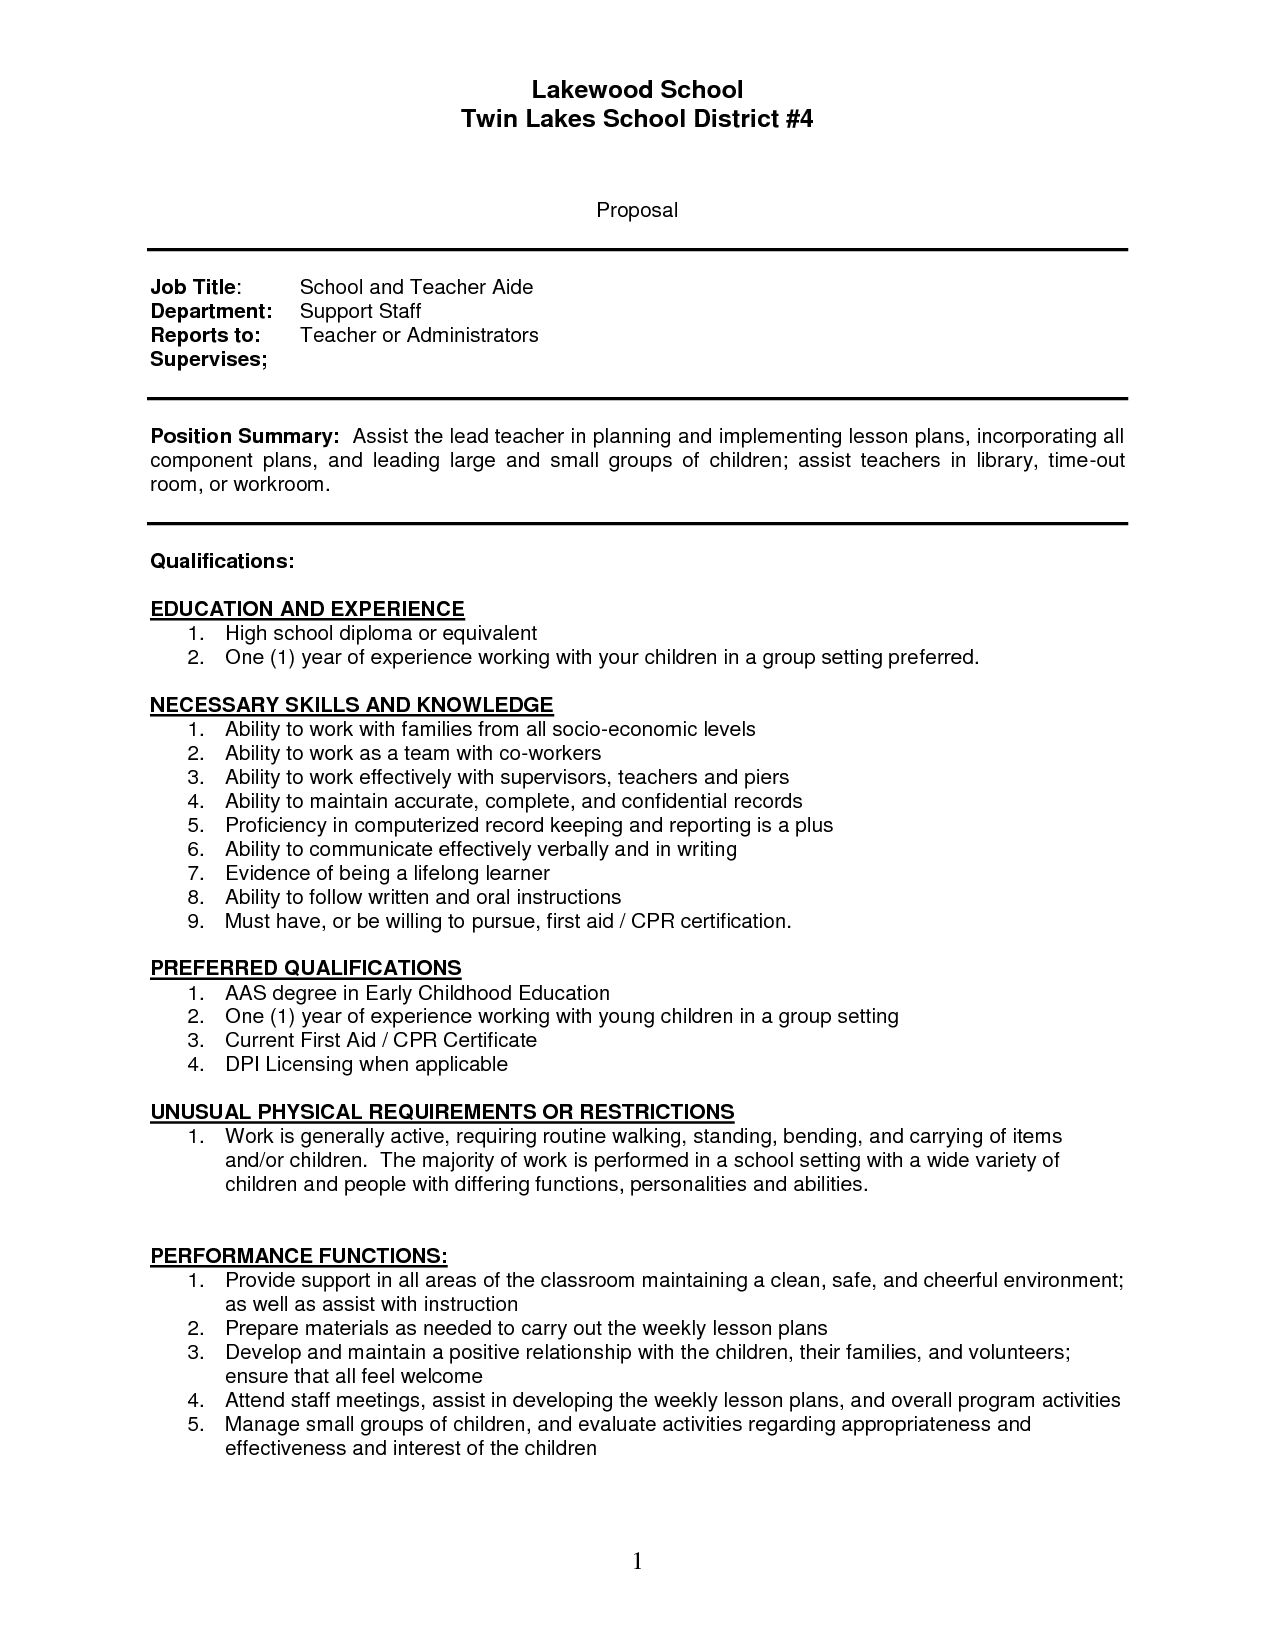 Sample Special Ed Teacher Resume - Sample Resume Teachers Aide assistant Cover Letter Teacher Sap